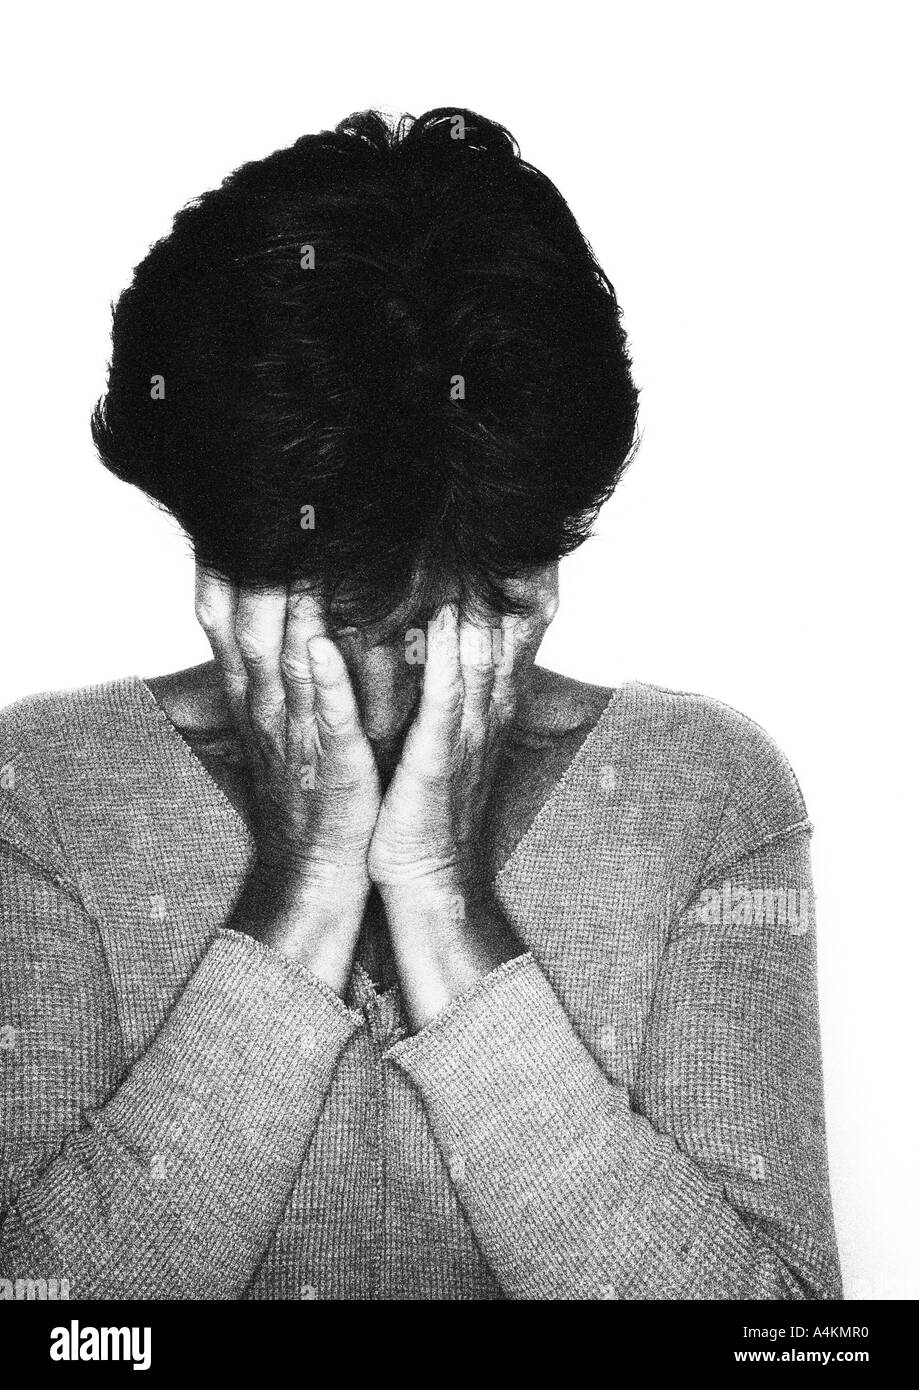 Woman covering her face with hands, portrait, b&w. - Stock Image